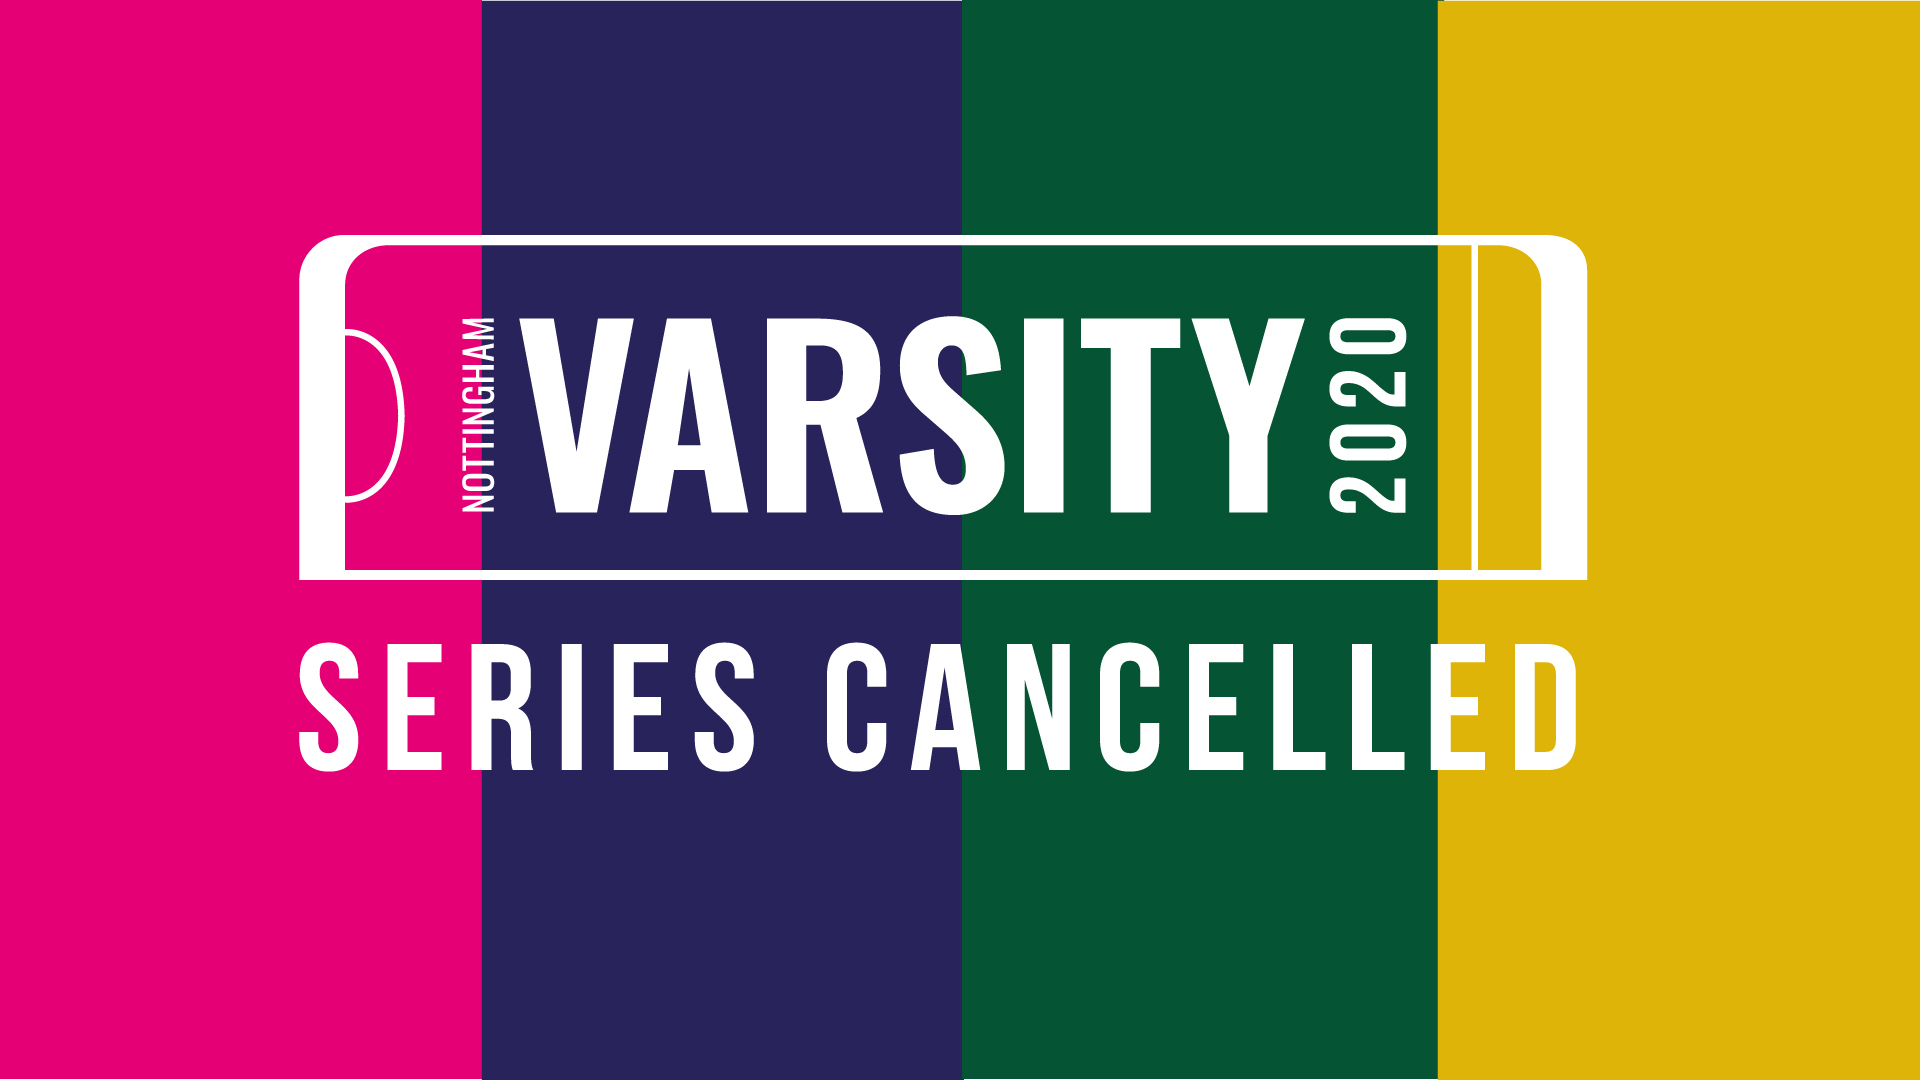 Varsity 2020 Series Cancelled